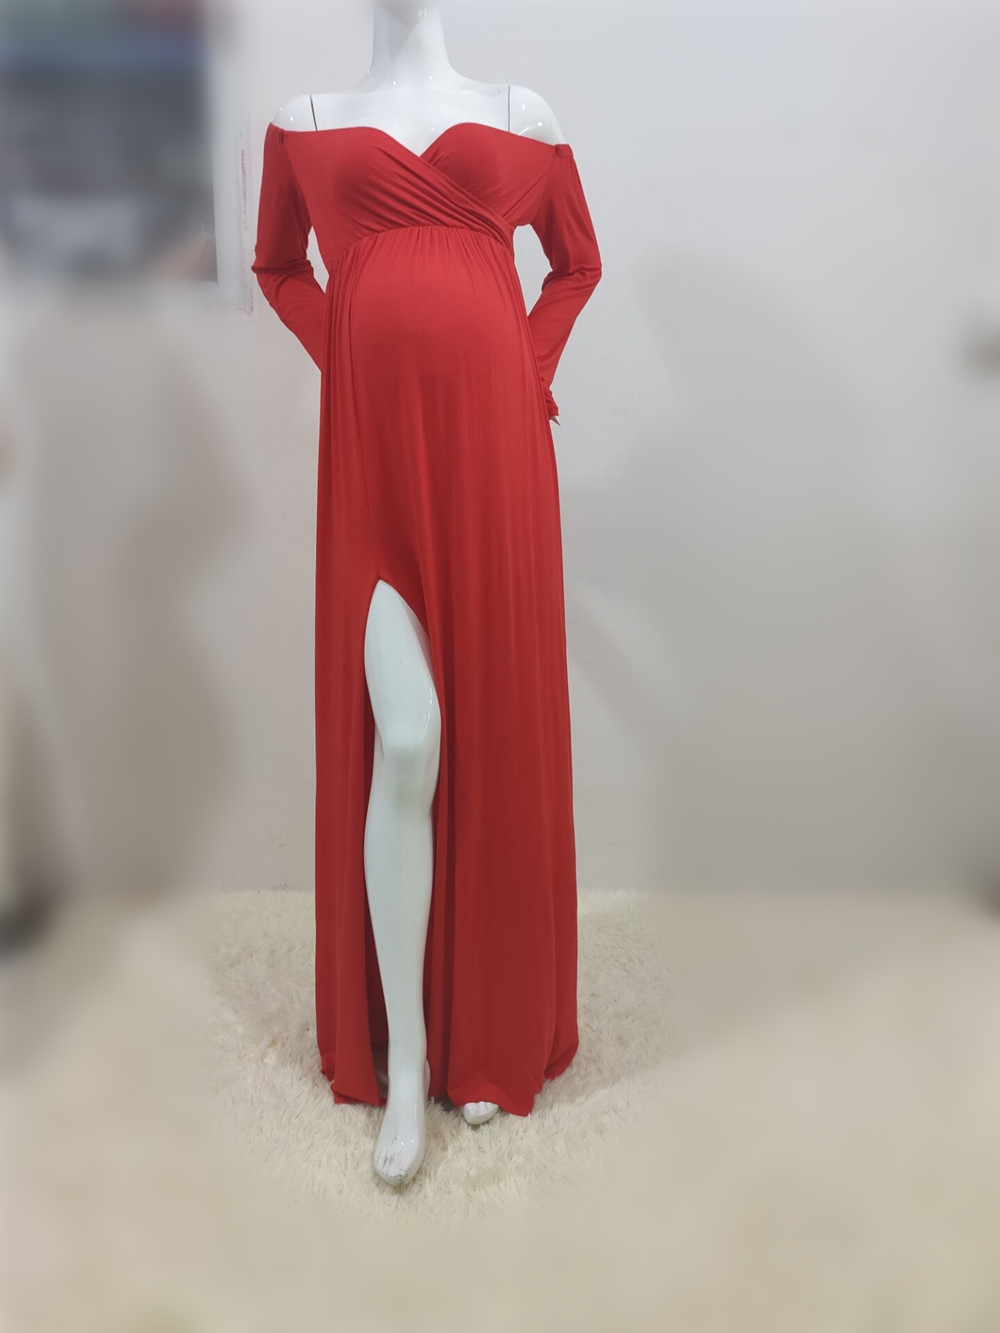 Long Shoulderless Maternity Photography Props Dresses Sexy Split Front Pregnancy Dress Photo Shoot For Pregnant Women Maxi Gown (4)